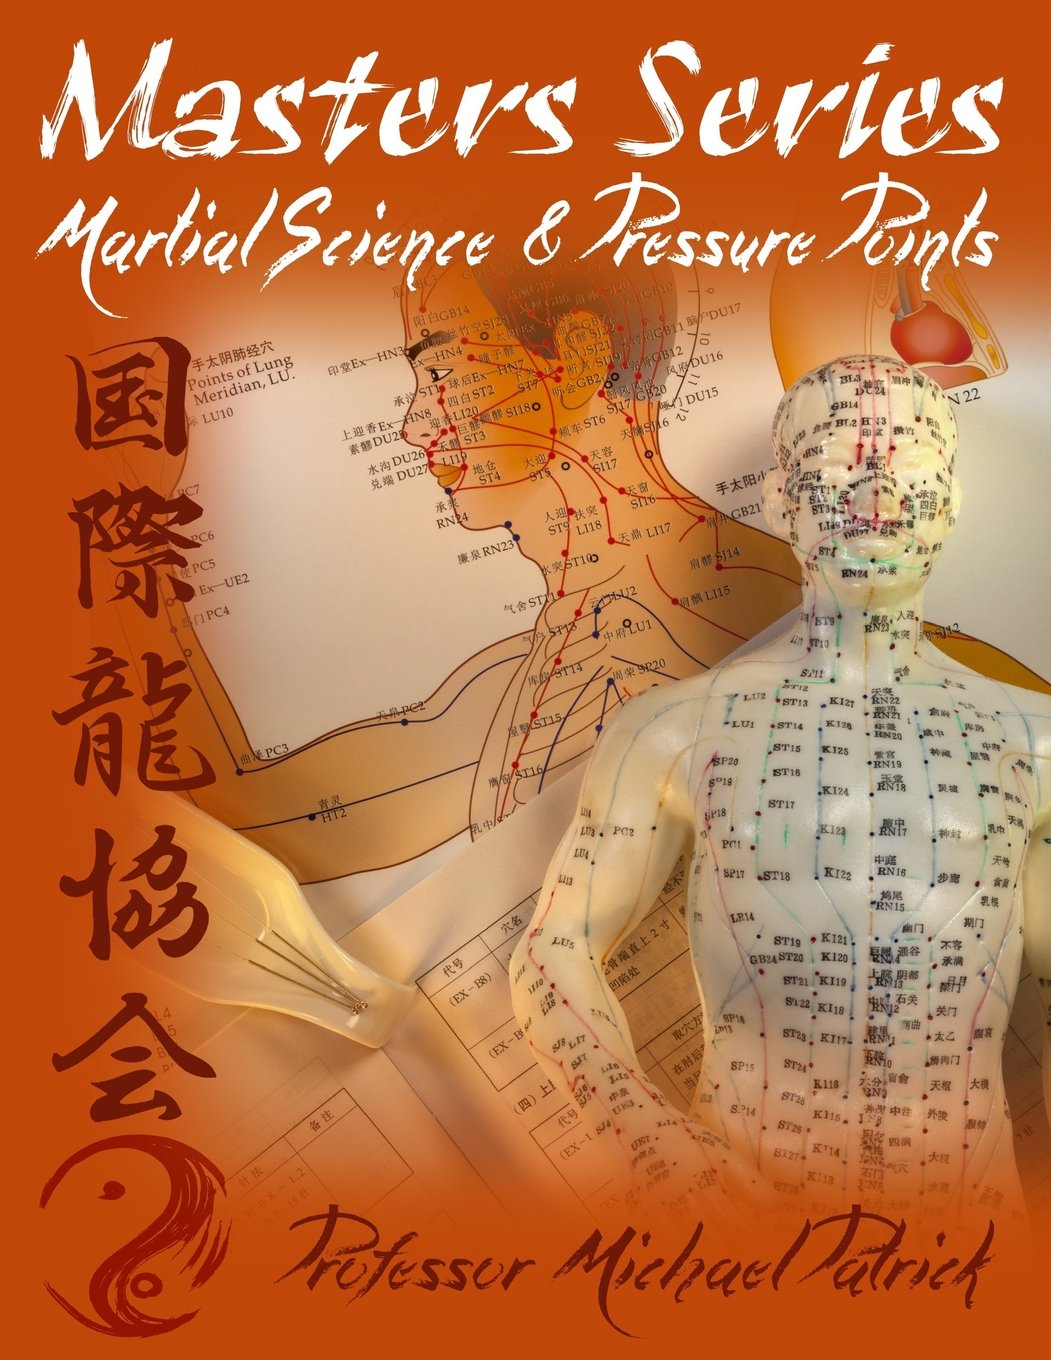 Masters Series: Martial Science & Pressure Points: Michael Patrick